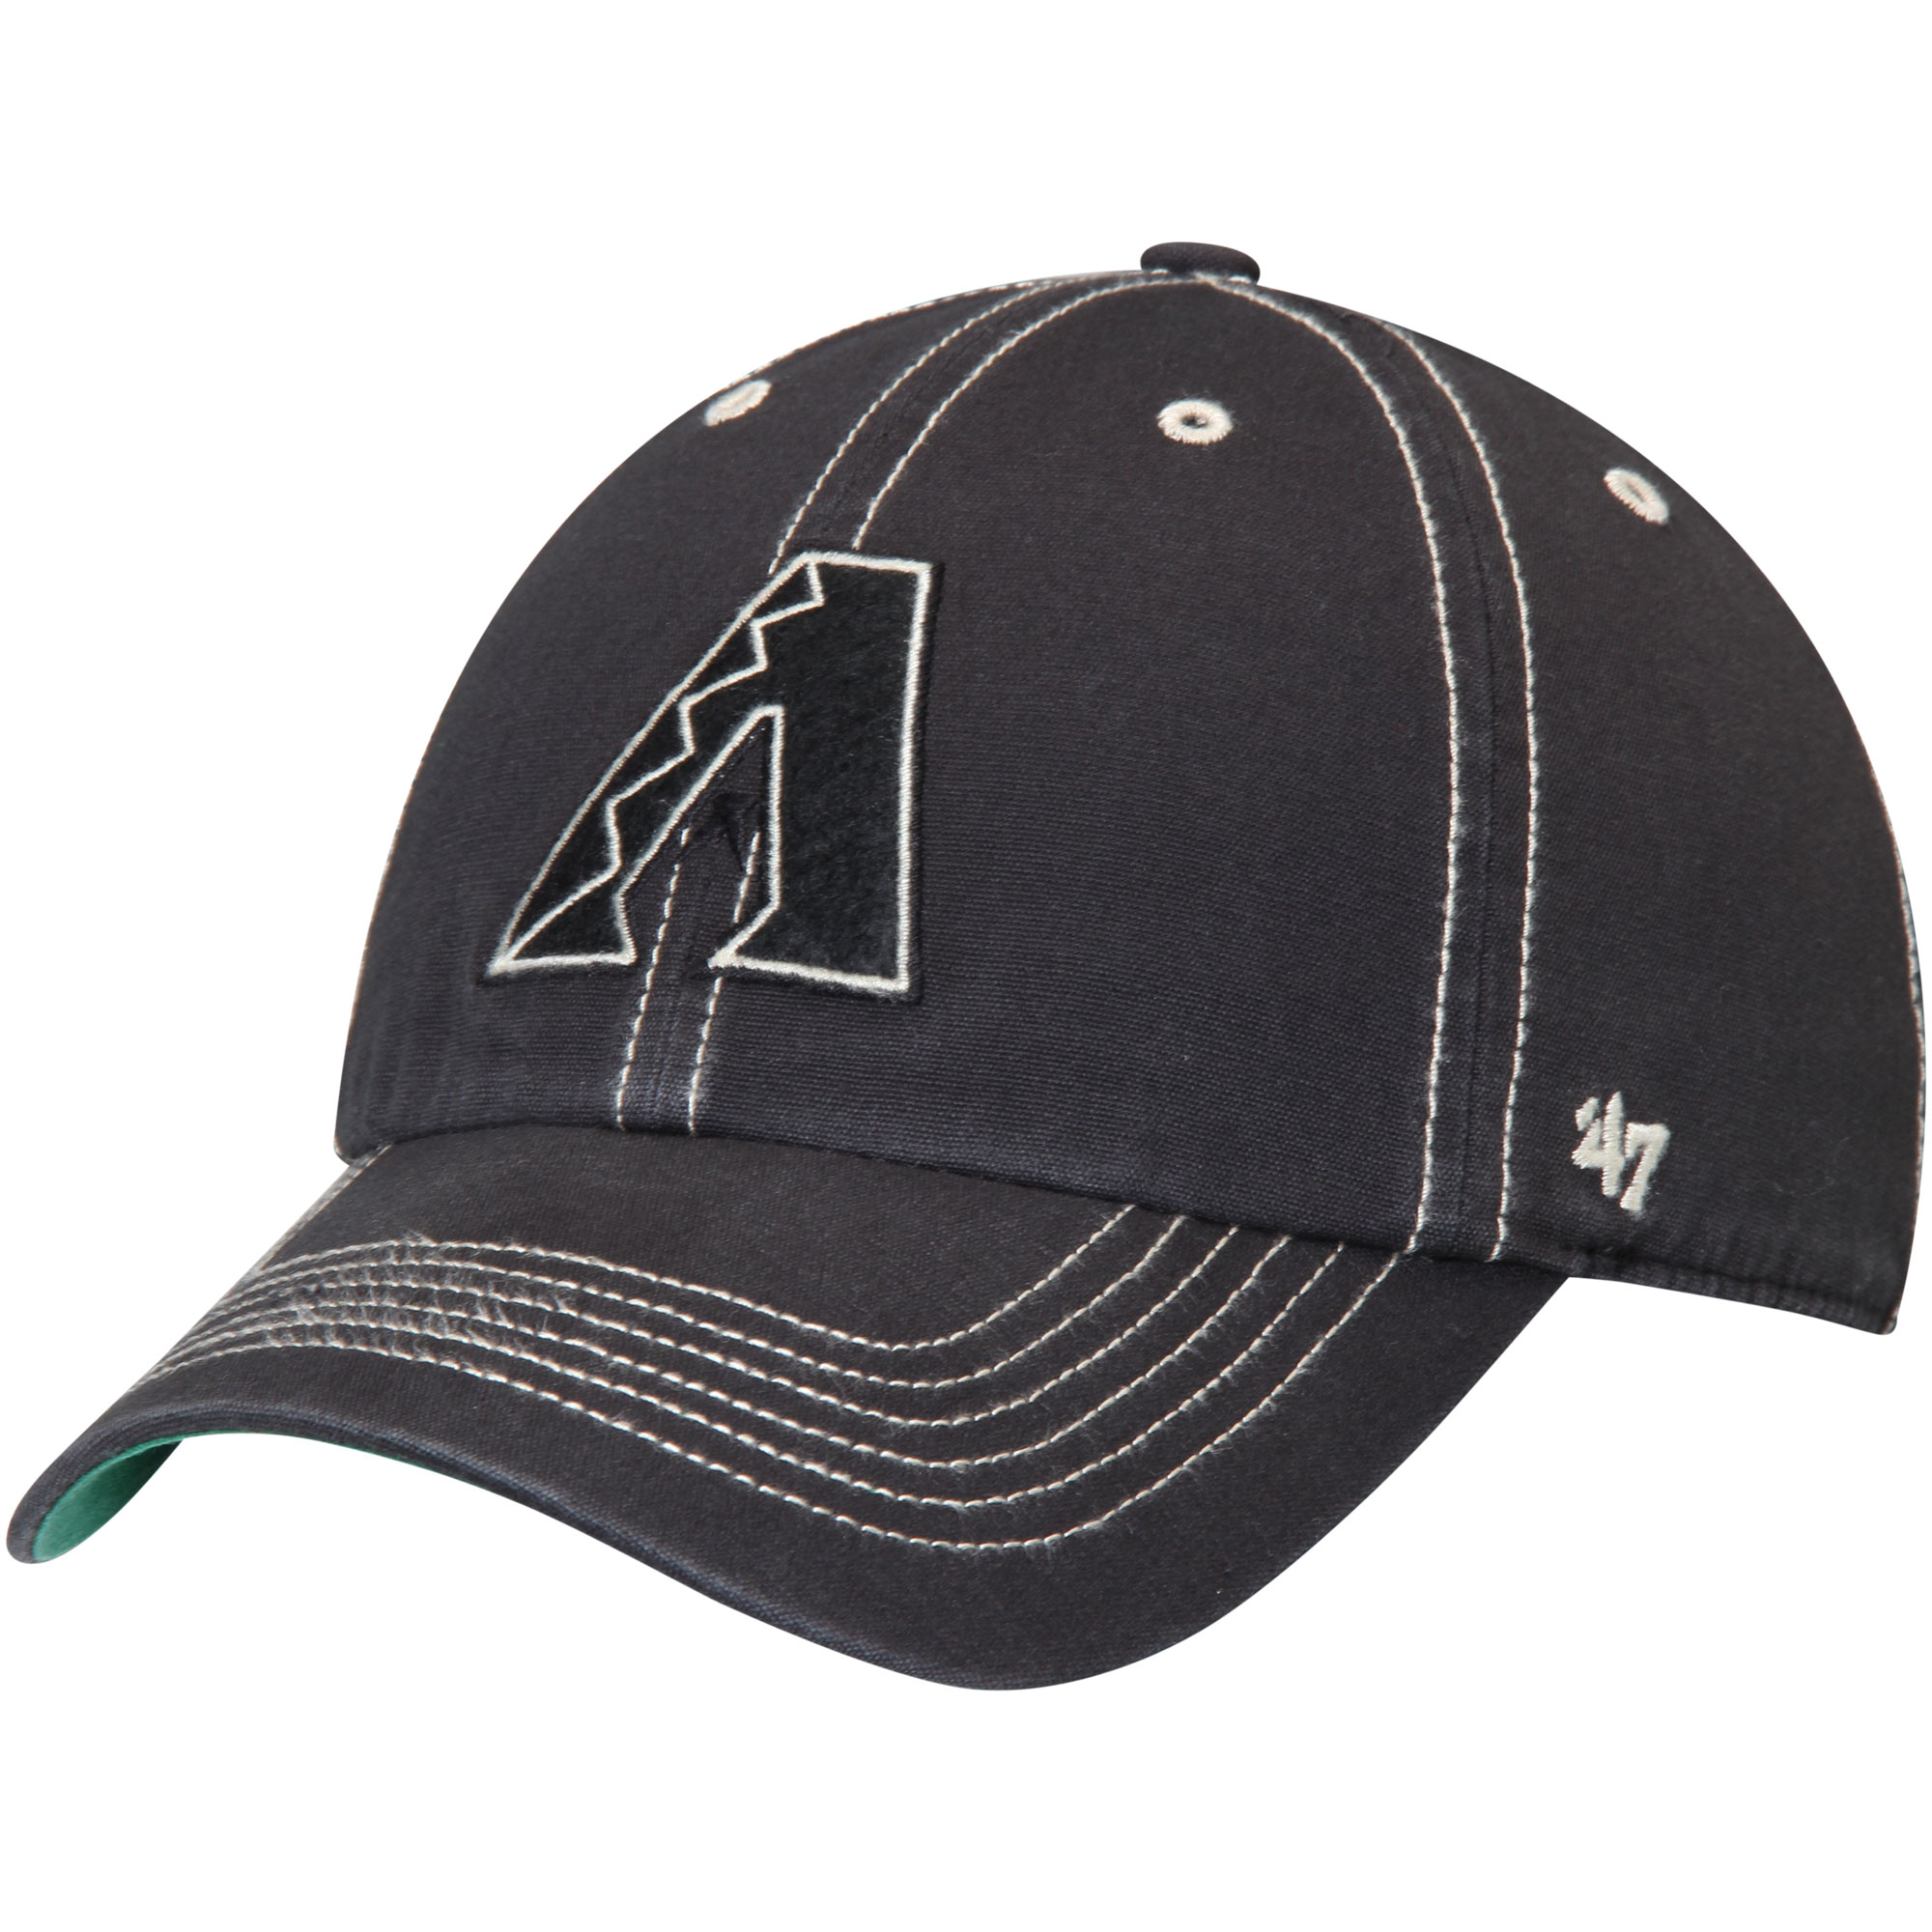 Arizona Diamondbacks '47 Groveland Franchise Fitted Hat - Black